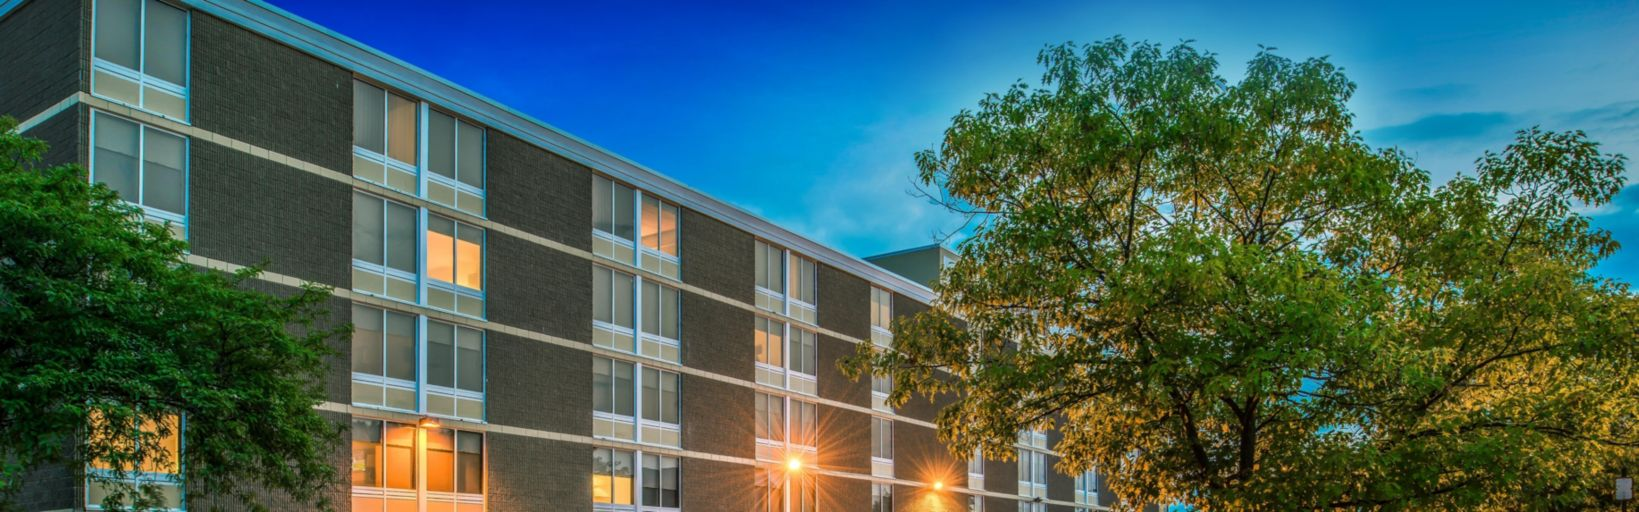 Located In The Heart Of Auburn Holiday Inn Finger Lakes